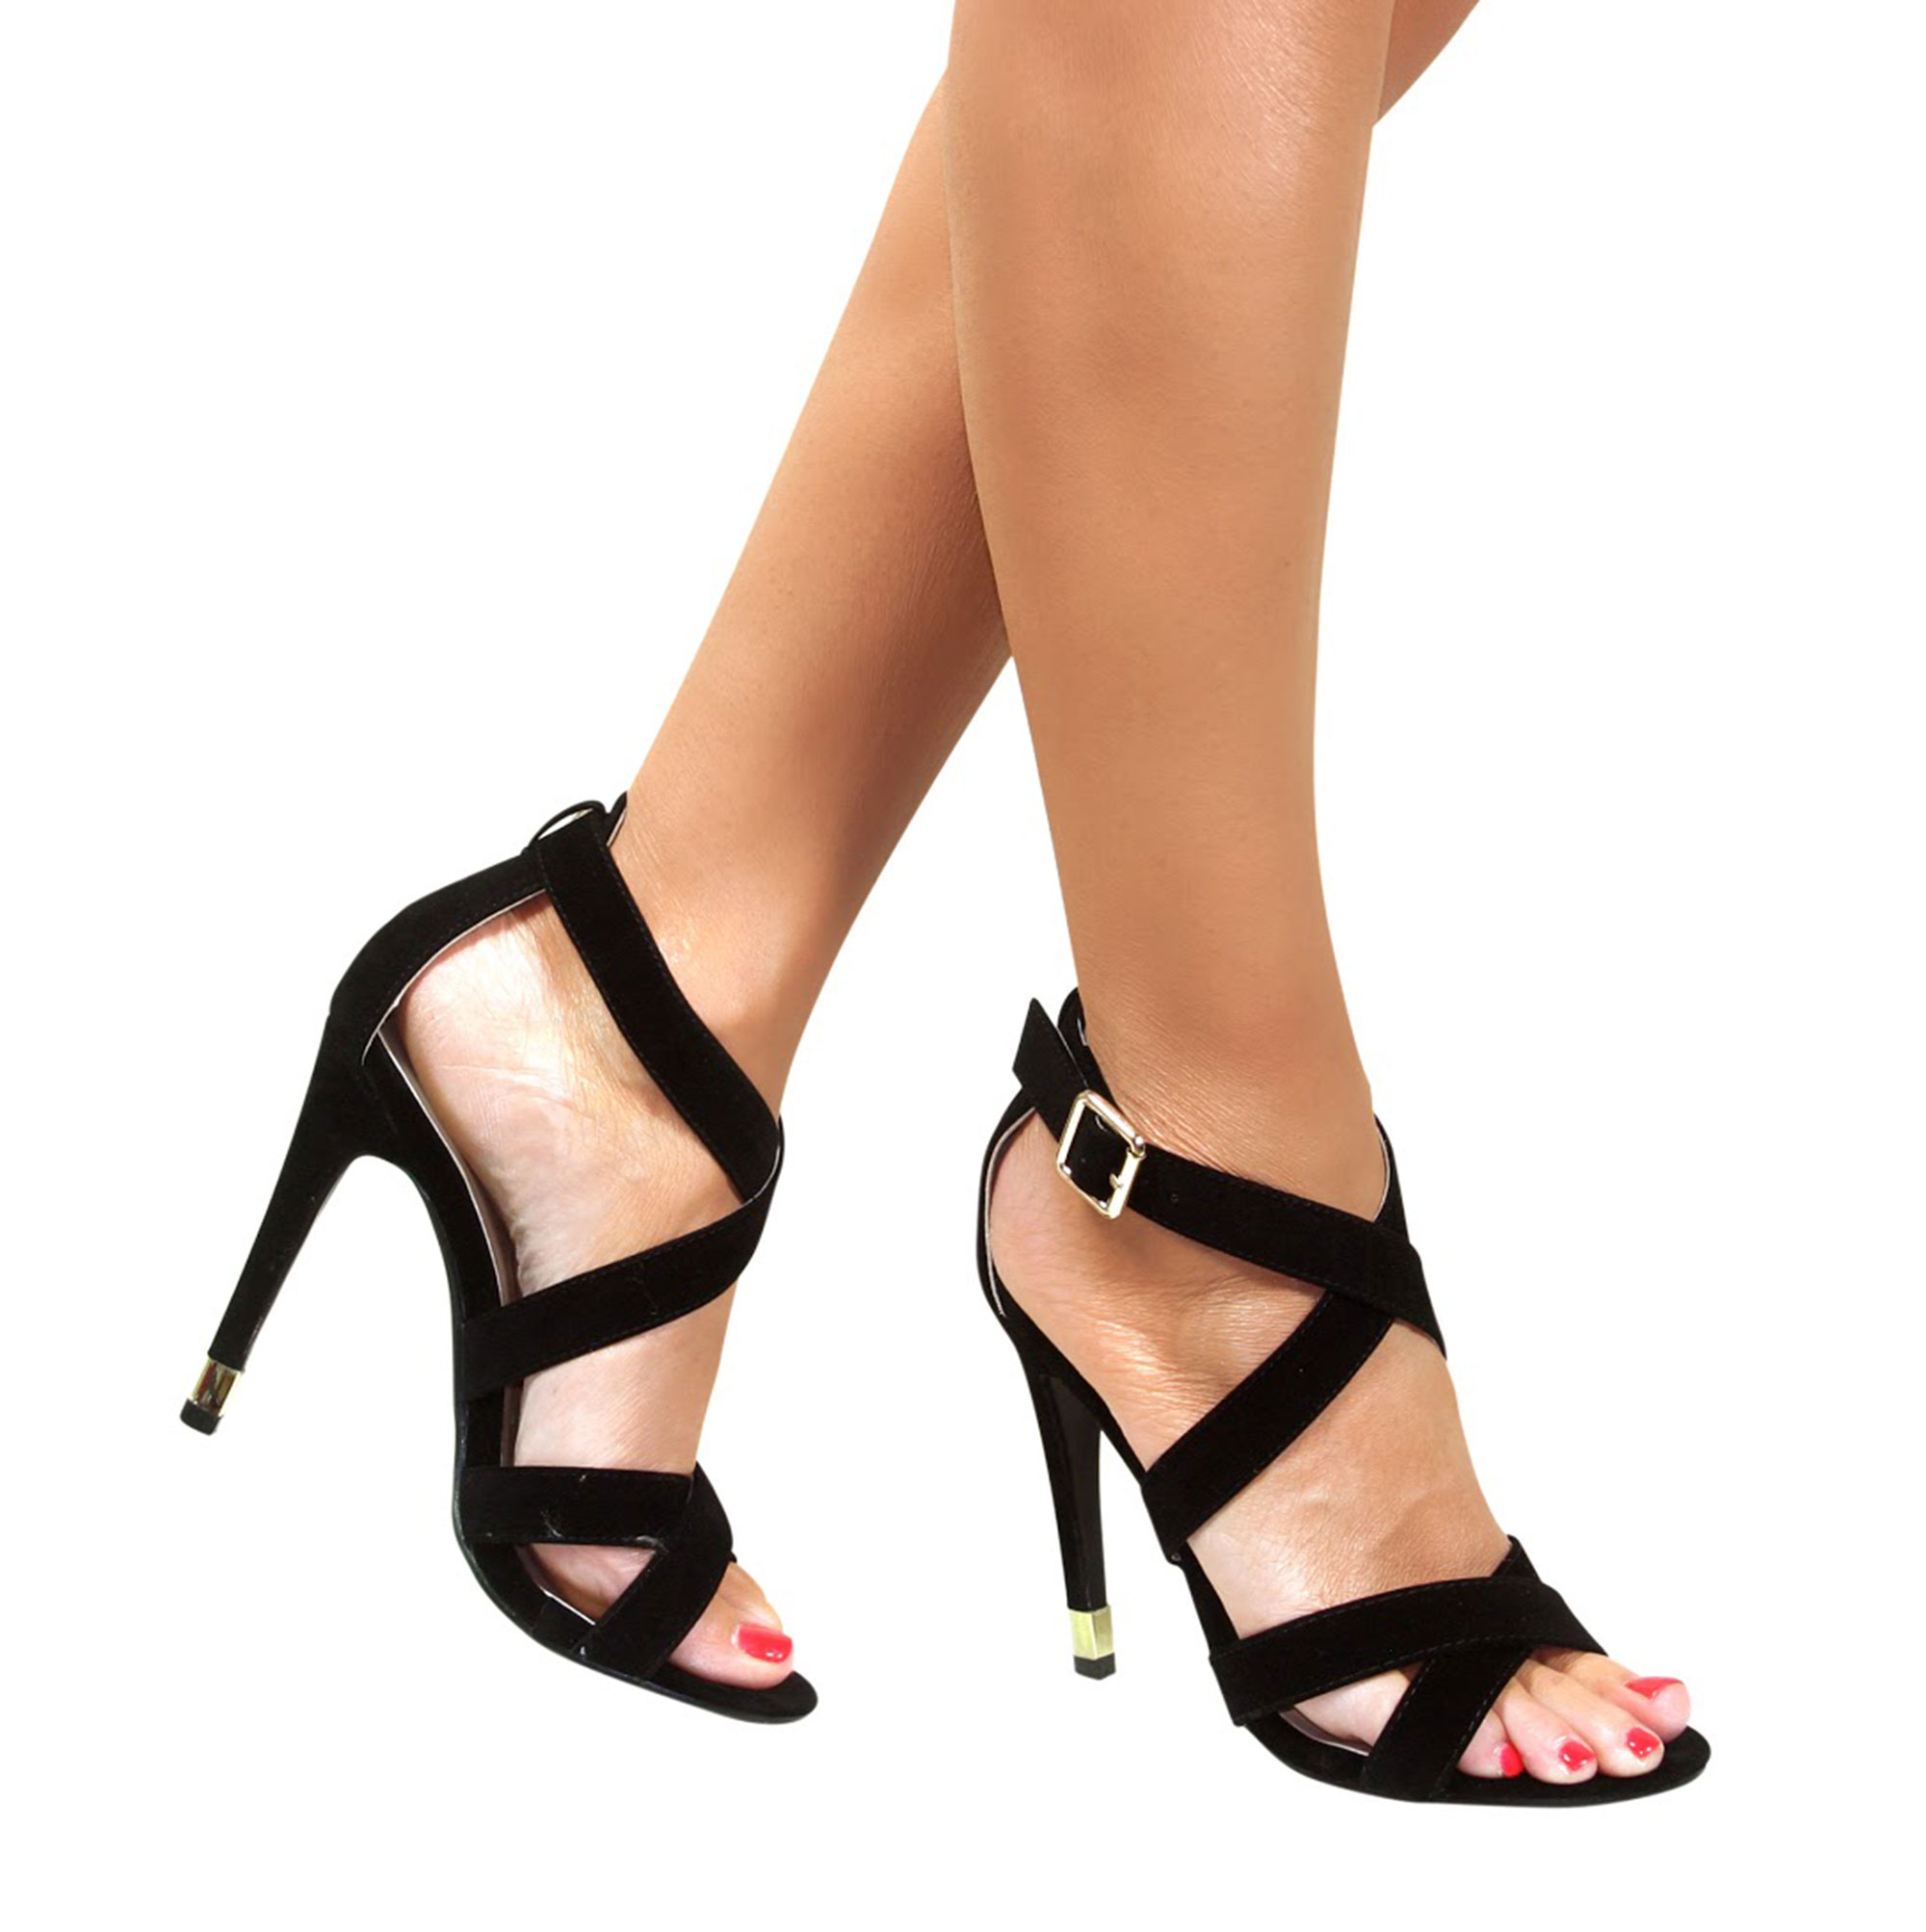 d157a817b5b6f STRAPPY SANDALS STILETTO HEEL ANKLE STRAP BUCKLE HIGH HEELS SHOES ...